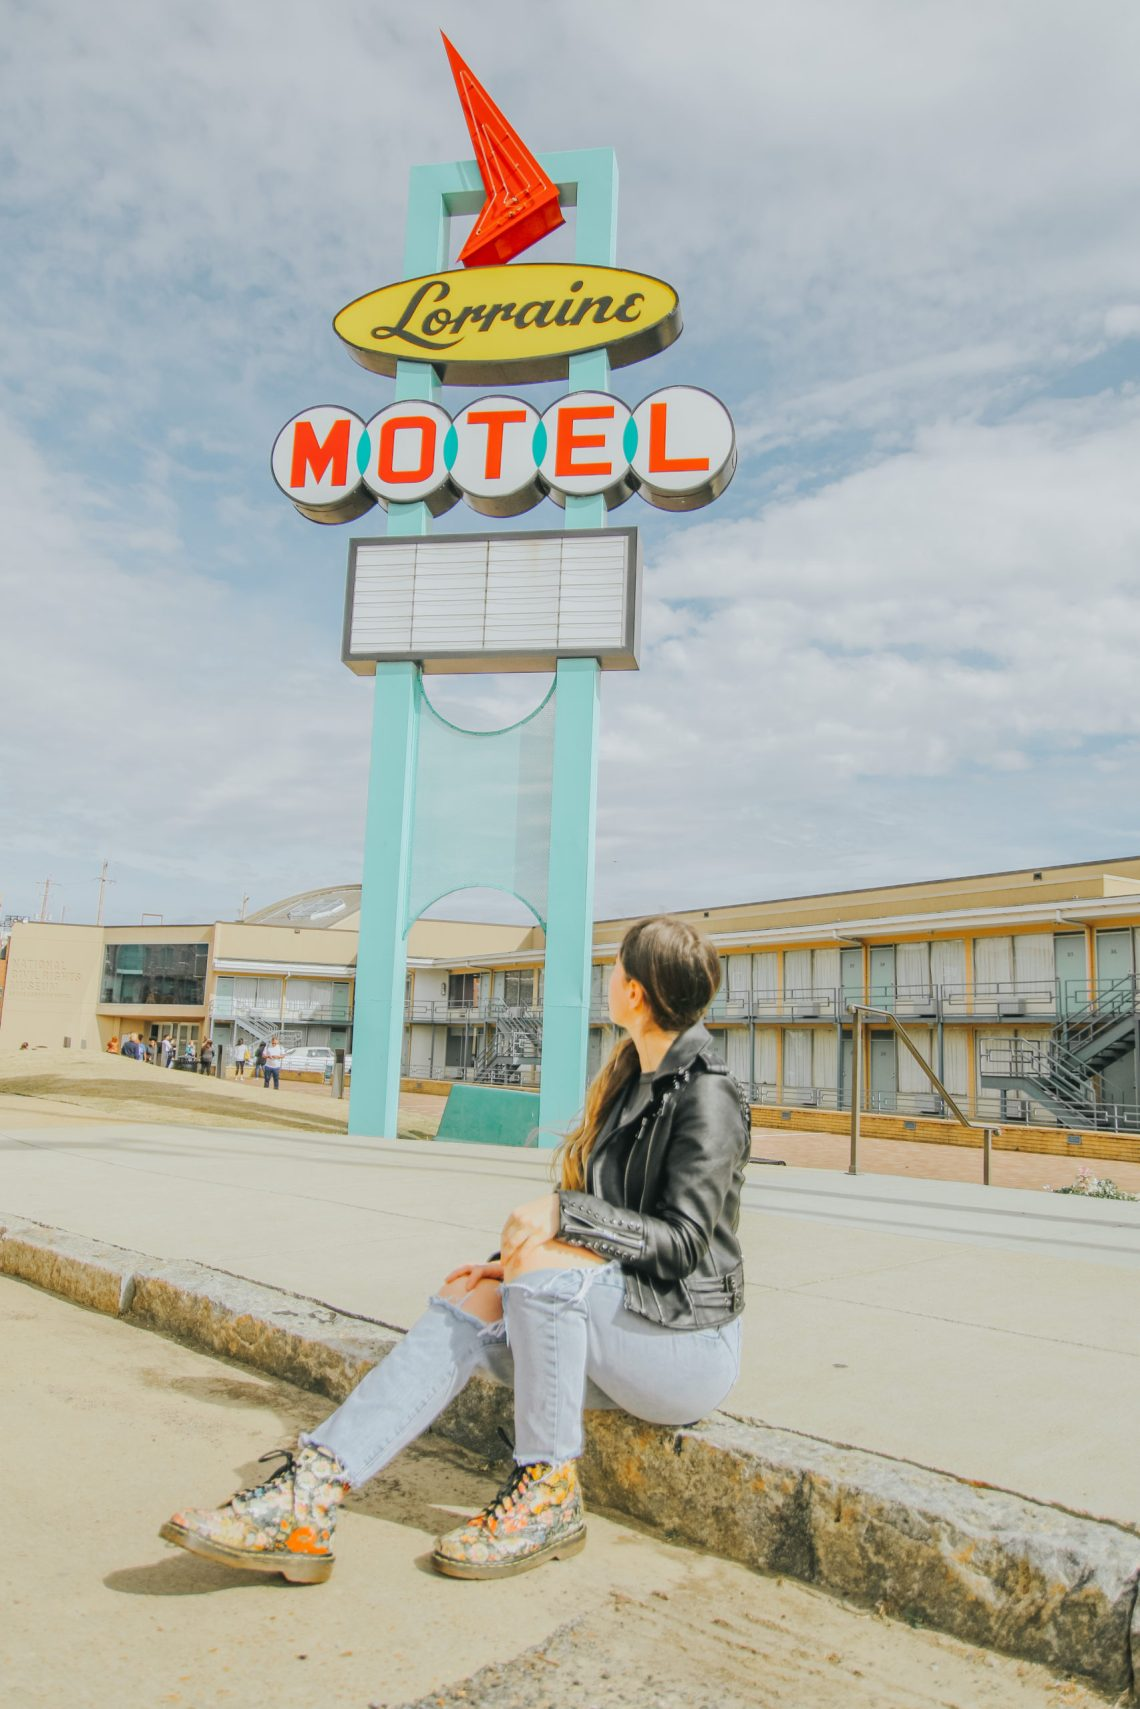 National Civil Rights Museum, NCR Museum, Lorraine Motel, MLK, Martin Luther King. Jr, civil rights, Memphis, Tennessee, Memphis Travel Guide, travel guide, The Best Instagram Spots in Memphis, travel, The Urban Darling, blog, blogger.